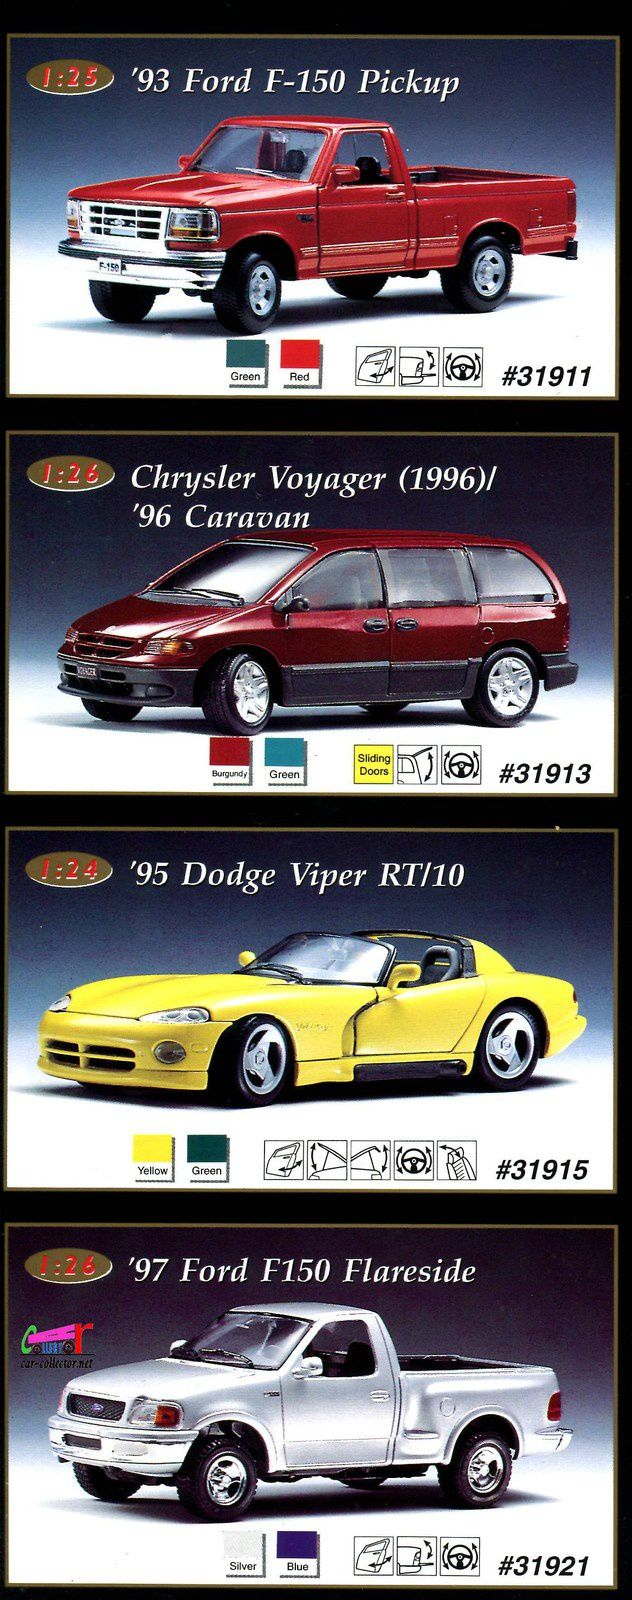 93-ford-f150-pick-up-chrysler-voyager-caravan-1996-95-dodge-viper-rt/10-97-ford-f150-flareside-maisto-1-24